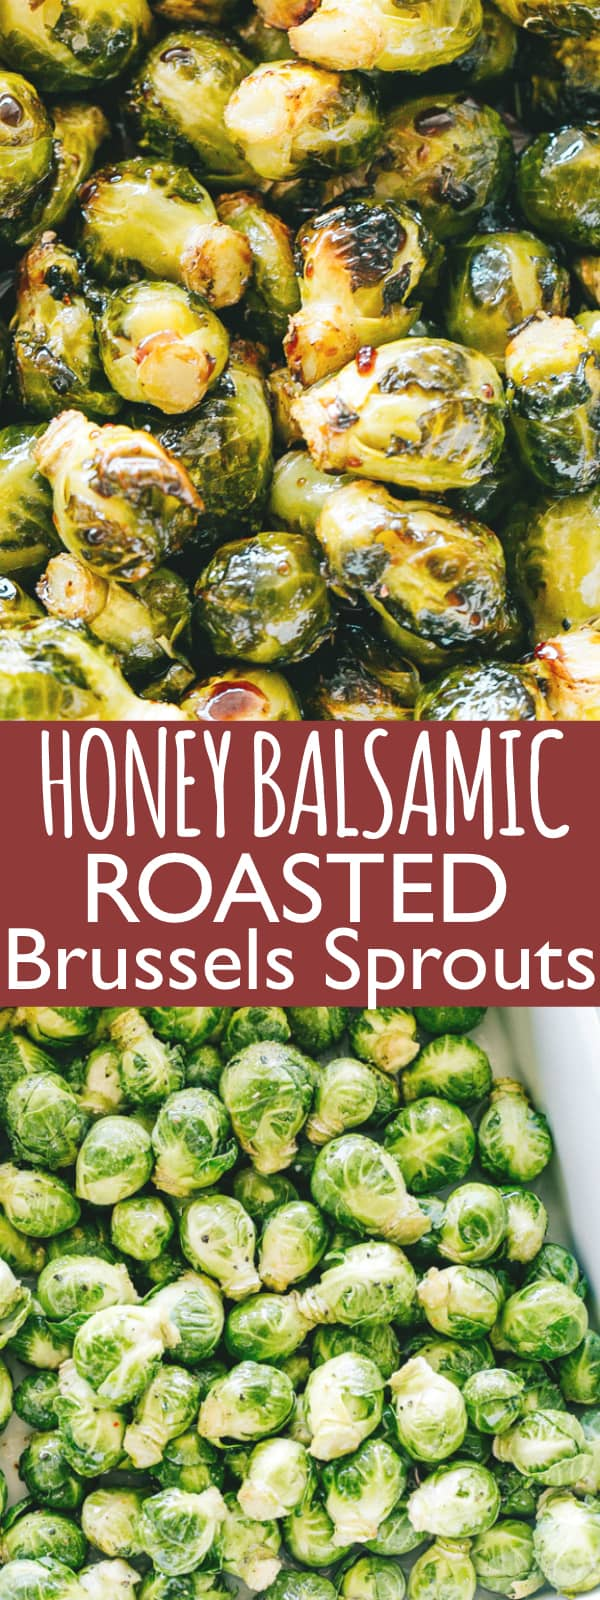 Oven Roasted Brussels Sprouts with Honey Balsamic Glaze - Roasted, crispy and delicious brussels sprouts coated with an amazing honey balsamic glaze!This easy to make Oven Roasted Brussels Sprouts Recipeis the perfect side dish that belongs on your Thanksgiving table.#holidays #thanksgivingrecipes #thanksgiving #thanksgivingsidedish #brusselssprouts #roastedvegetables #roastedbrusselssprouts #glutenfree #vegetarian #christmasrecipes #christmas #cheese